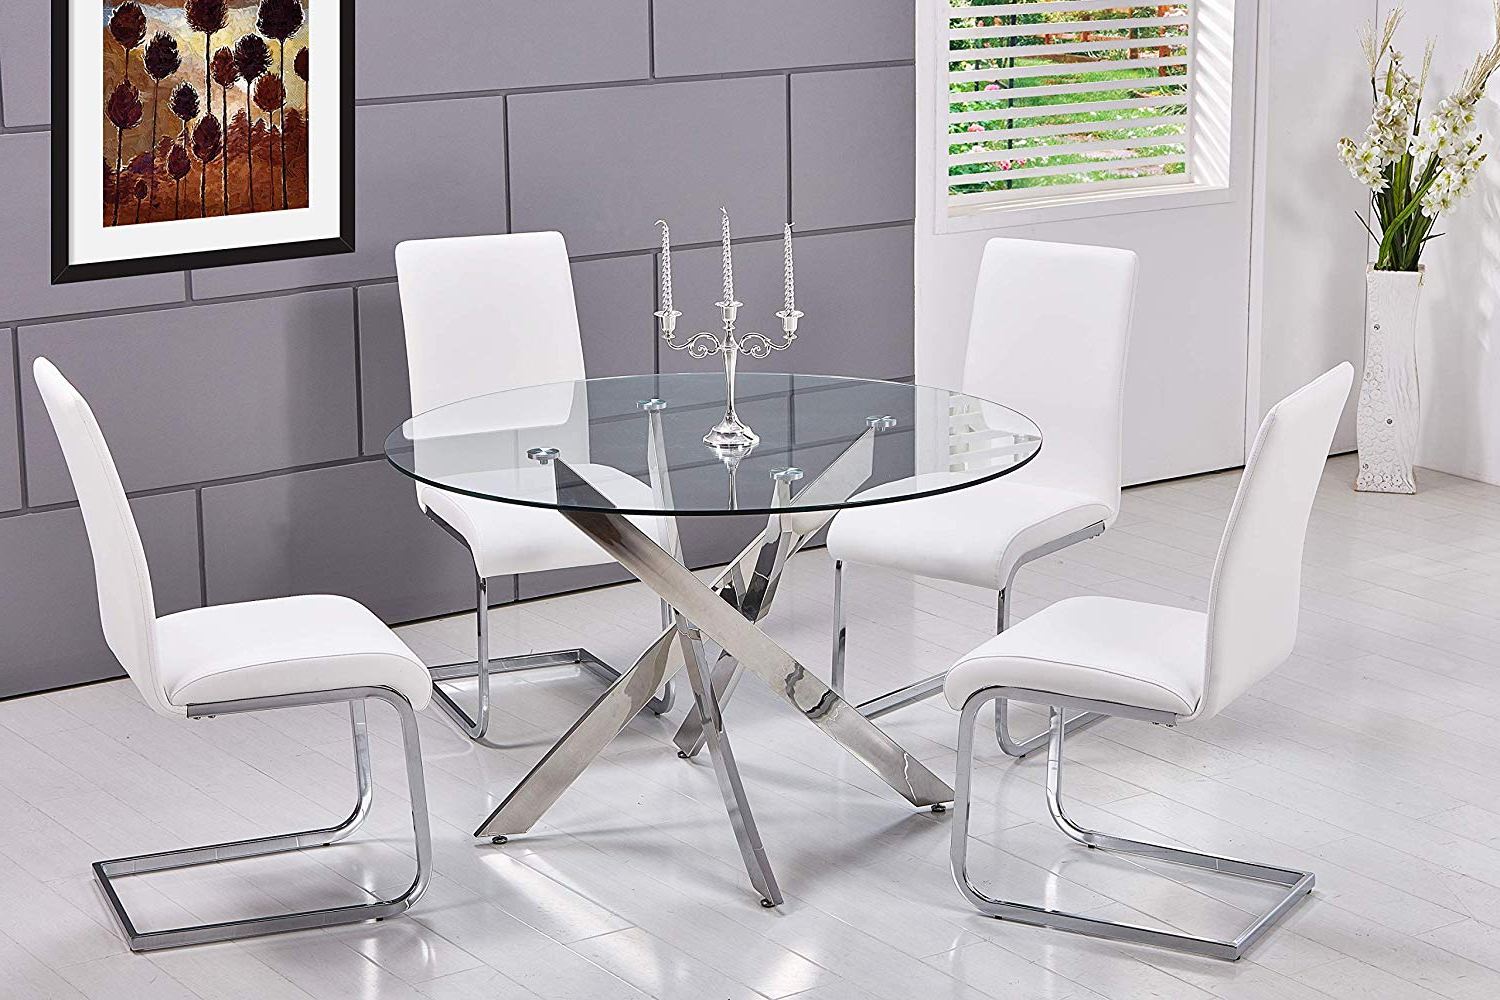 Fashionable Best Master Furniture T01 Mirage 5 Pcs Glass Top Modern Dining Set, White Regarding 4 Seater Round Wooden Dining Tables With Chrome Legs (Gallery 2 of 30)